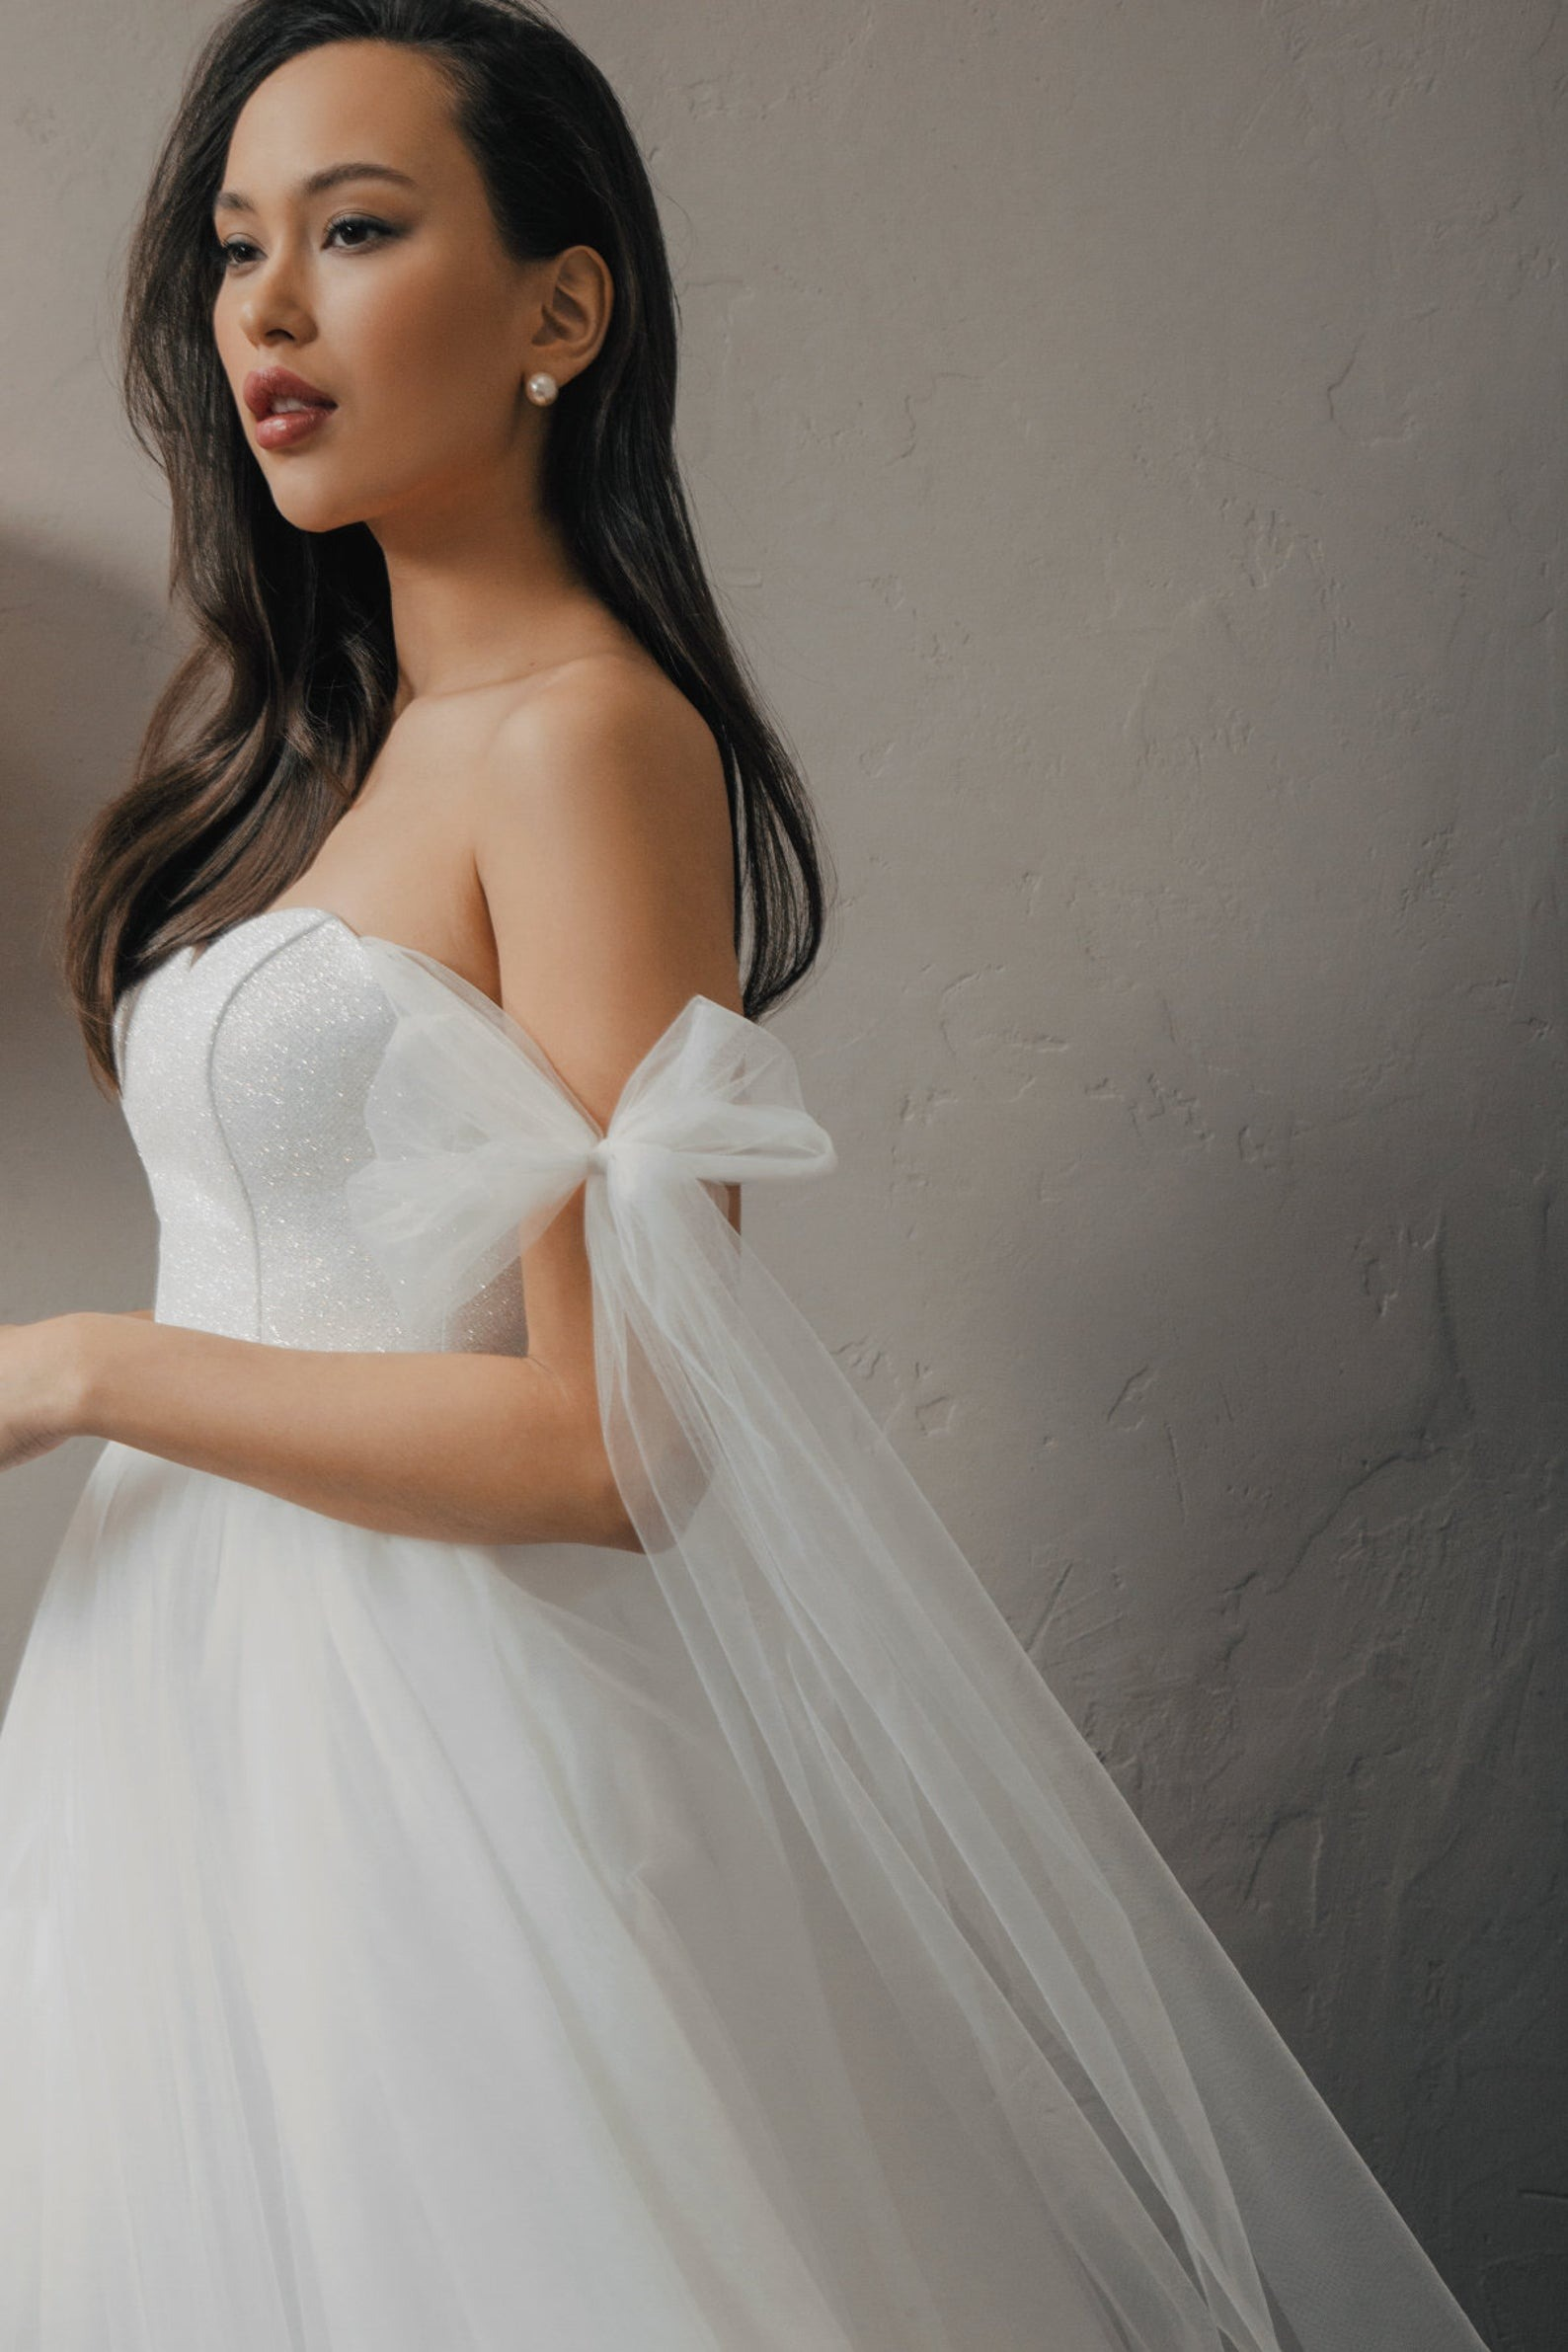 whimsical off shoulder online wedding dresses with tulle bowtie detailing from Piondress